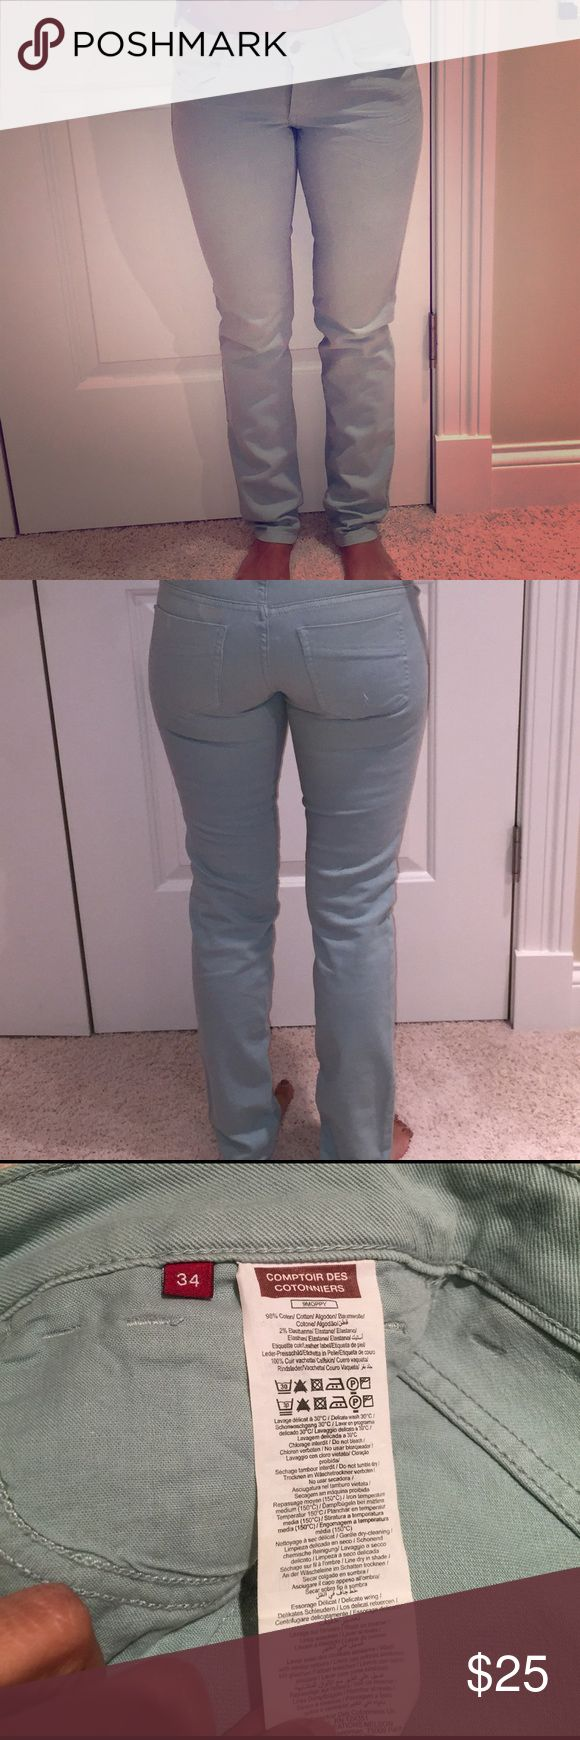 """Pistachio pale green jeans. Size 34 European. 32"""" inseam. No flaws and no trades. Size 34 European is 24-25 USA waist in denim. This is a French brand. comptoir des cotonniers Jeans Skinny"""